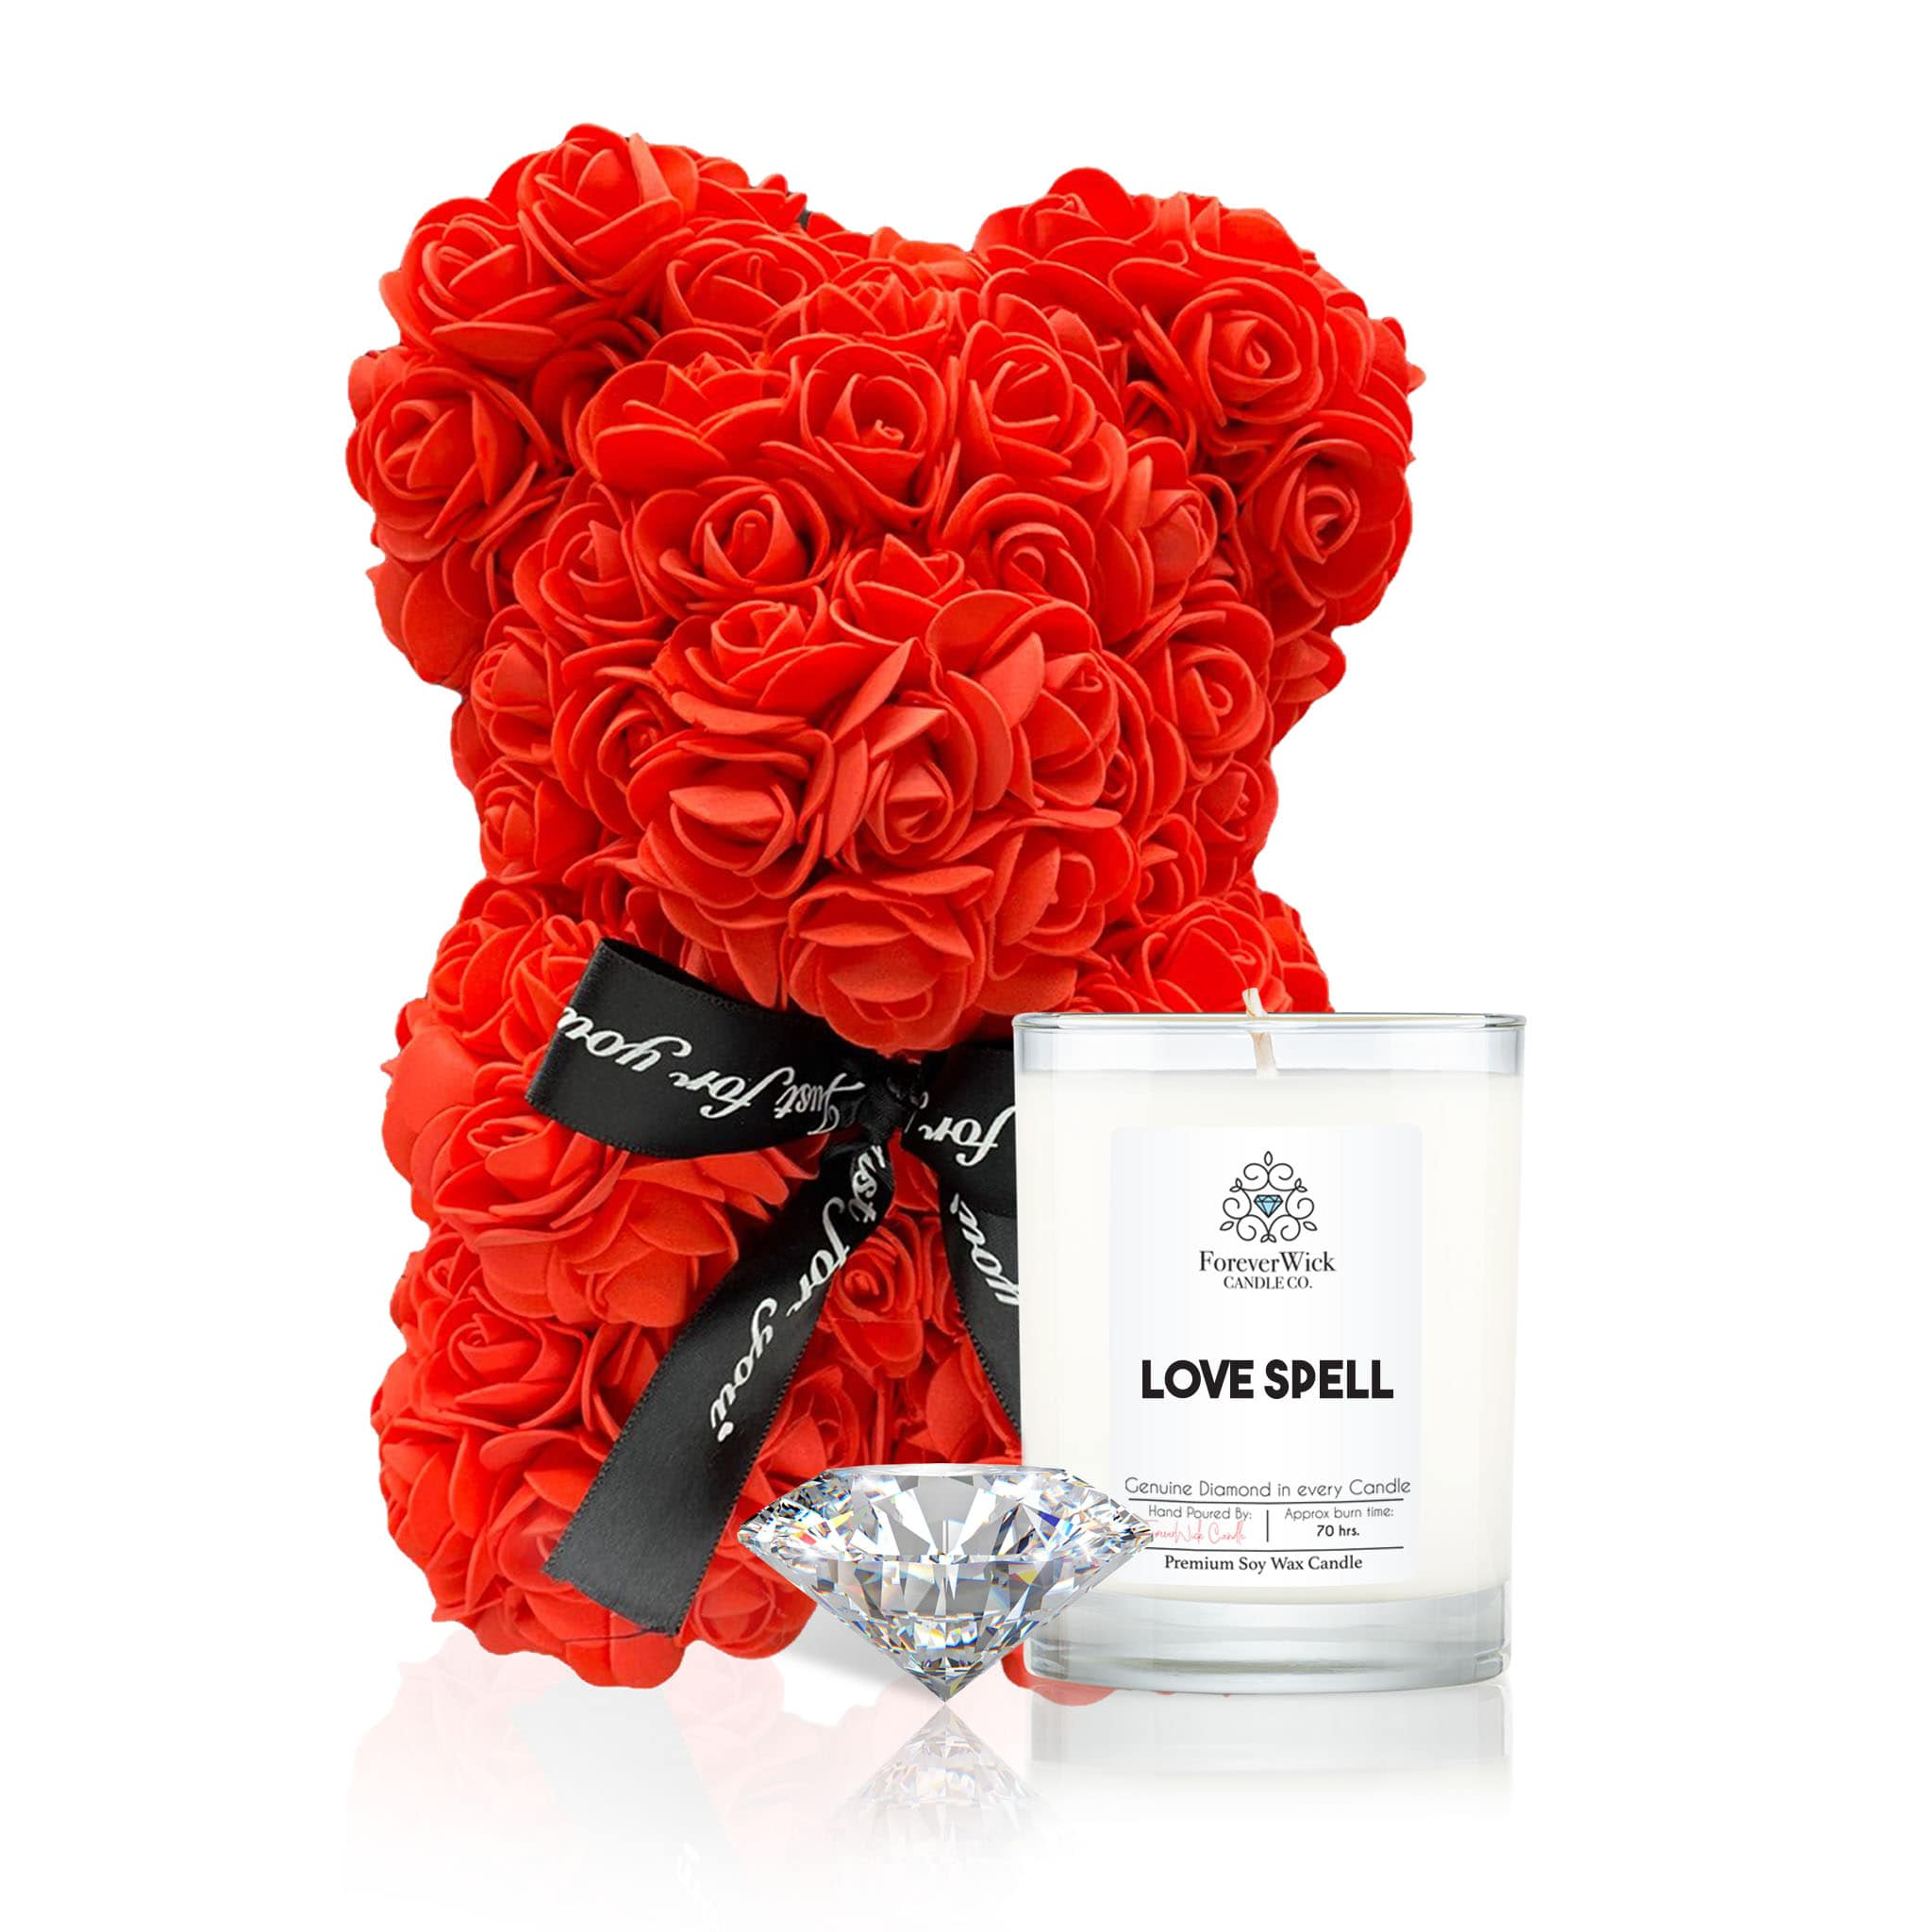 The ForeverRose Teddy Bear Gift Set